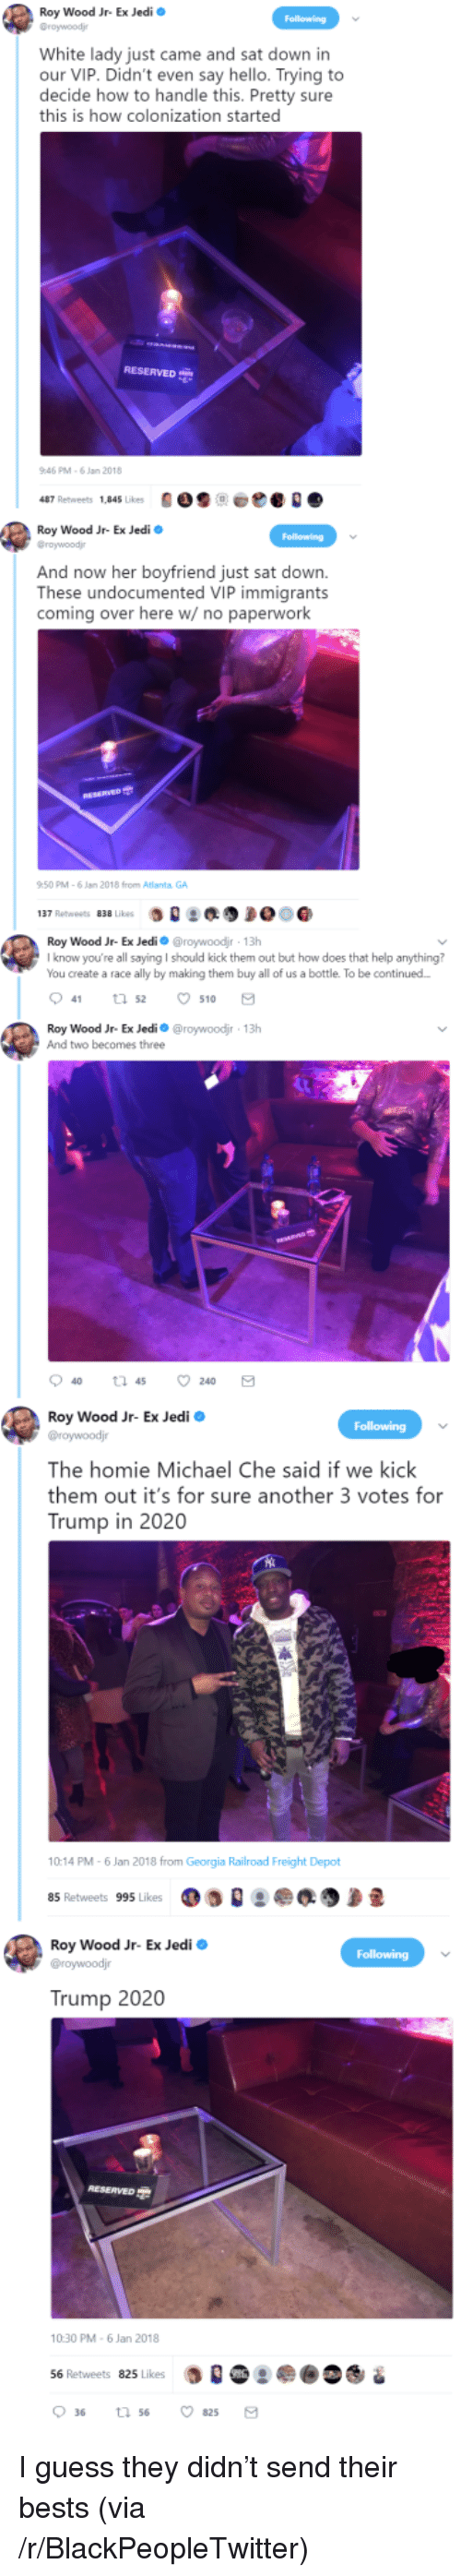 railroad: Roy Wood Jr- Ex Jedi  Graywoodj  White lady just came and sat down in  our VIP. Didn't even say hello. Trying to  decide how to handle this. Pretty sure  this is how colonization started  RESERVED  46 PM-6 Jan 2018  487 Retweets 1,845 Likes900e  Roy Wood Jr- Ex Jedi  Groywoodj  And now her boyfriend just sat down.  These undocumented VIP immigrants  coming over here w/ no paperwork  50 PM-6 Jan 2018 from Atlanta GA  :缑  137 Retweets 838 Likes  Roy Wood Jr-Ex Jedi Ф @roywoodir , 13h  I know you're all saying I should kick them out but how does that help anything?  You create a race ally by making them buy all of us a bottle. To be continued  041 52 ㅇ510  Roy Wood Jr- Ex Jedio @roywoodjr 13h  And two becomes three  Roy Wood Jr- Ex Jedi o  The homie Michael Che said if we kick  them out it's for sure another 3 votes for  Trump in 2020  10:14 PM-6 Jan 2018 from Georgia Railroad Freight Depot  85 Retweets 995 Likes  Roy Wood Jr- Ex Jedi  Trump 2020  10:30 PM-6 Jan 2018  56 Retweets 825 Likes  0 36 <p>I guess they didn&rsquo;t send their bests (via /r/BlackPeopleTwitter)</p>